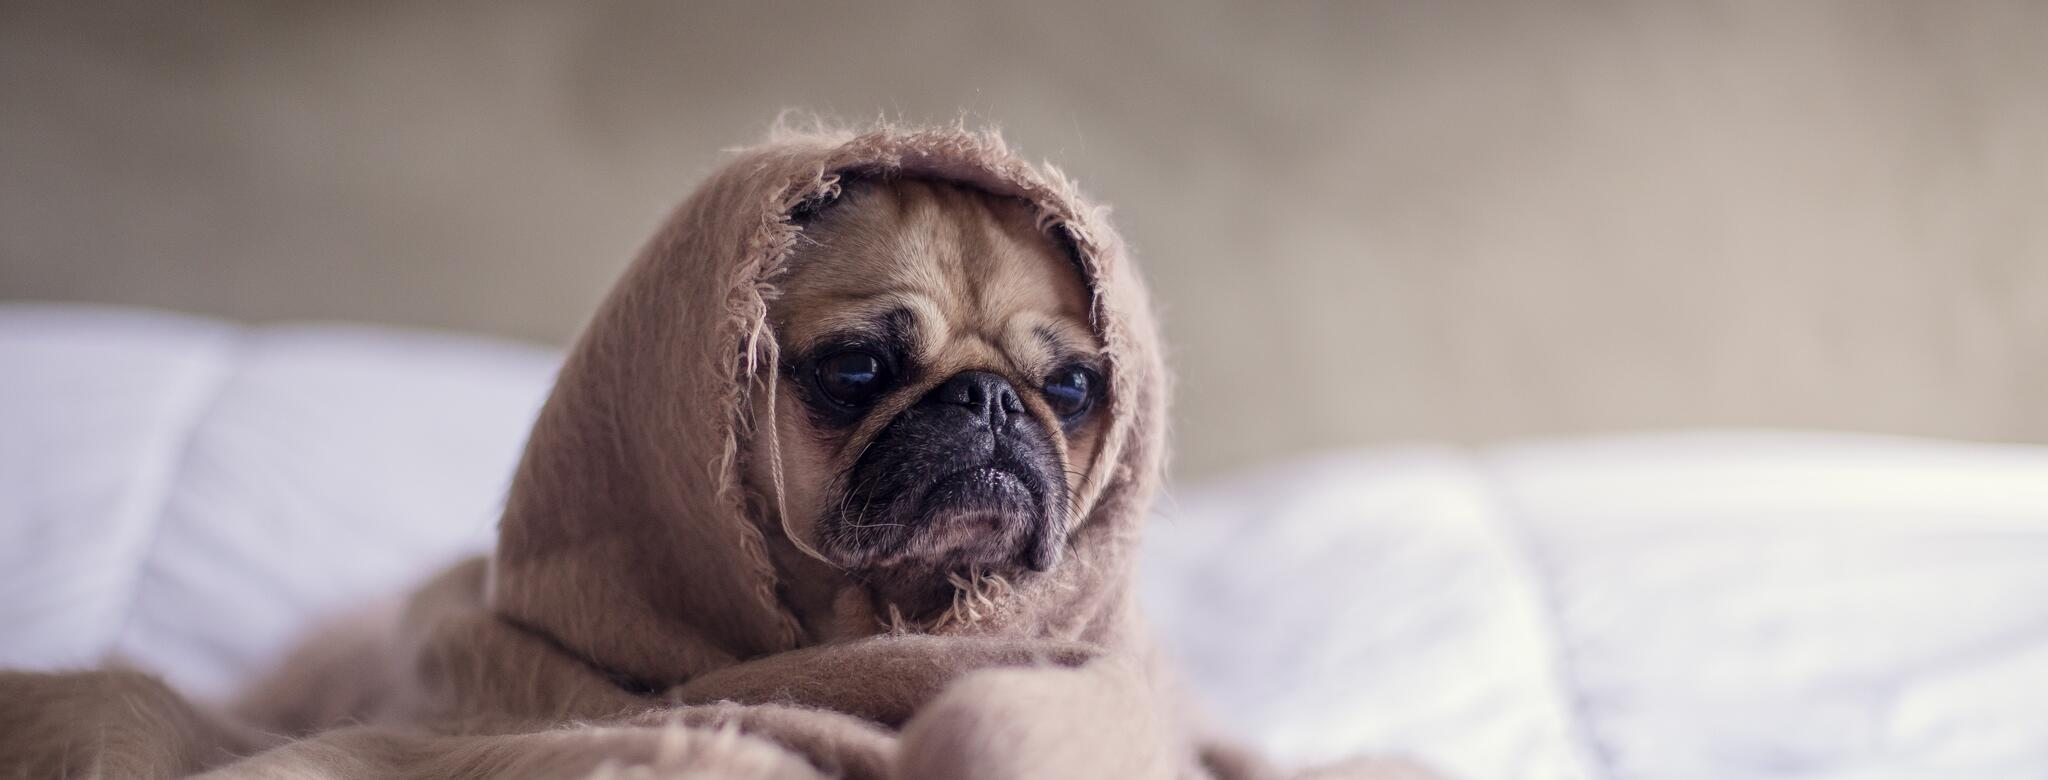 A stressed pug on a bed wrapped up in a blanket